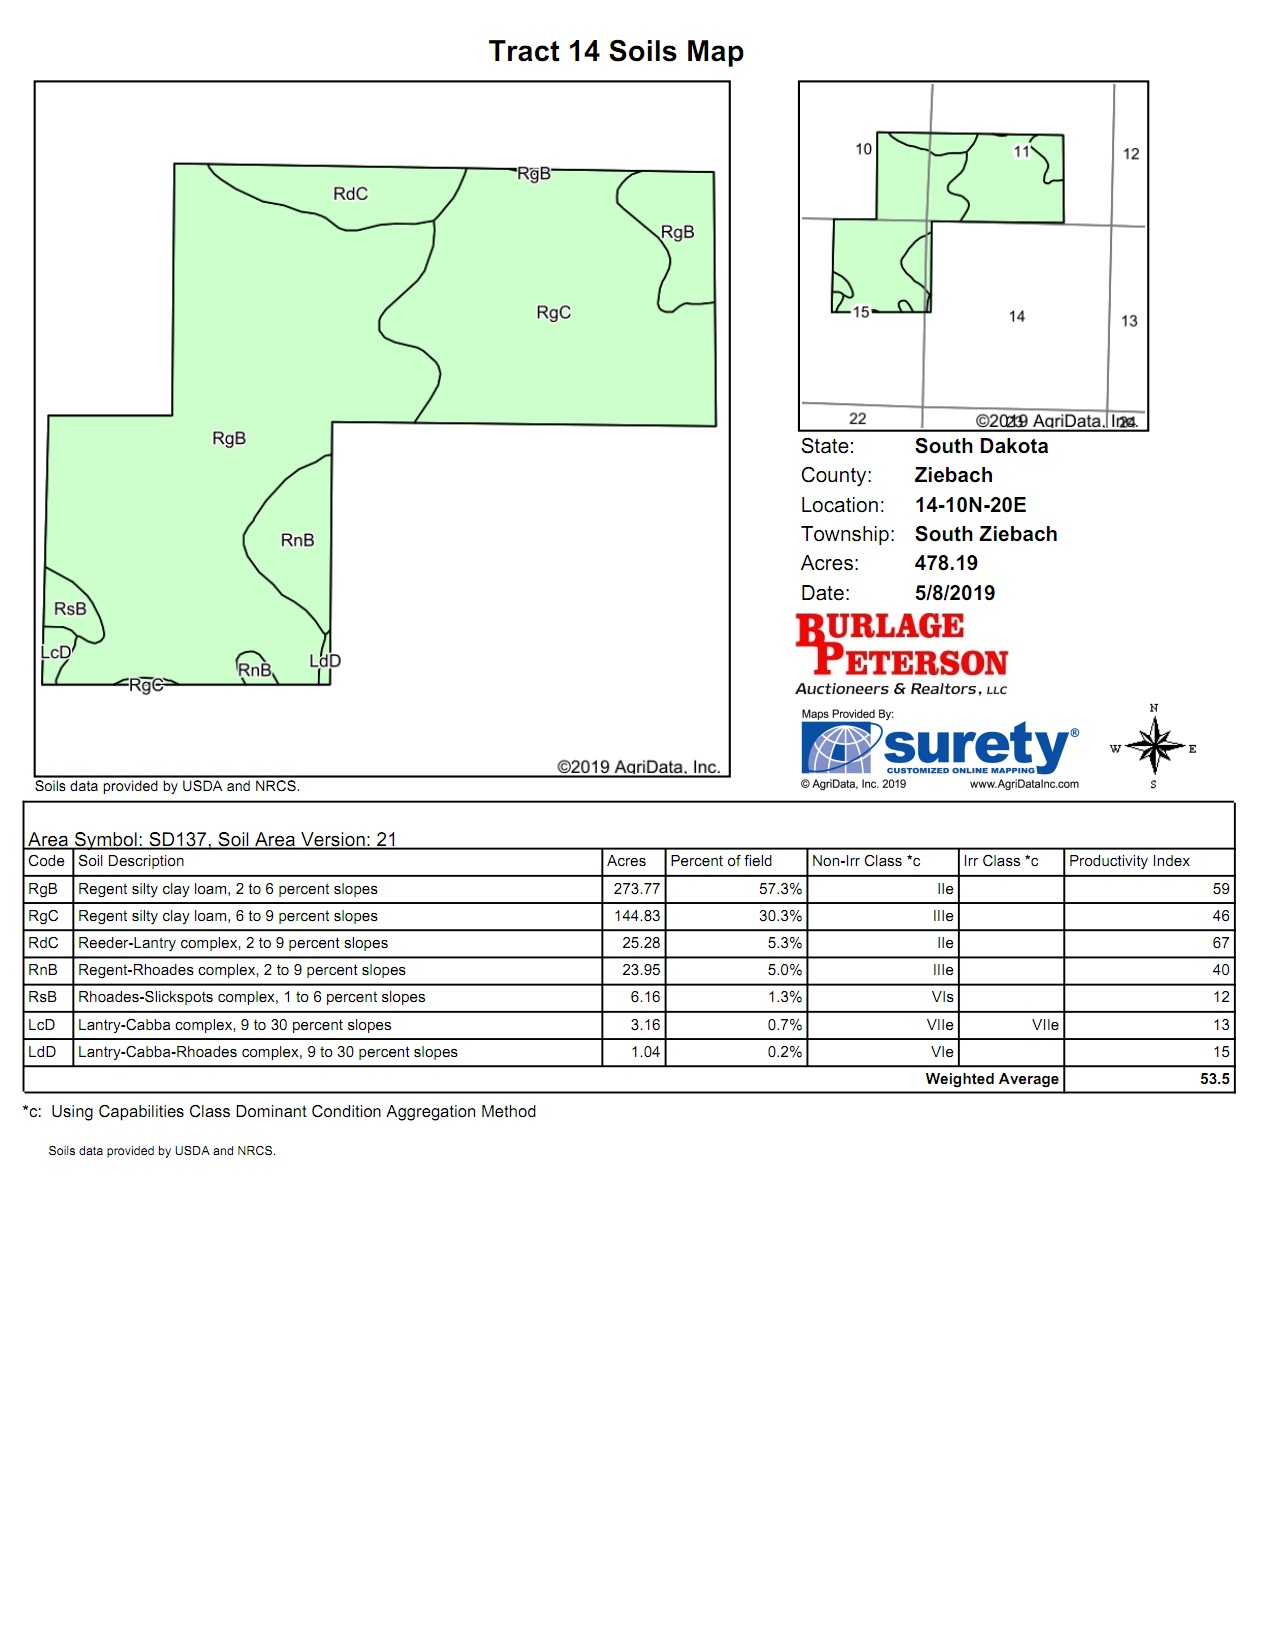 Tract 14 Soil Map